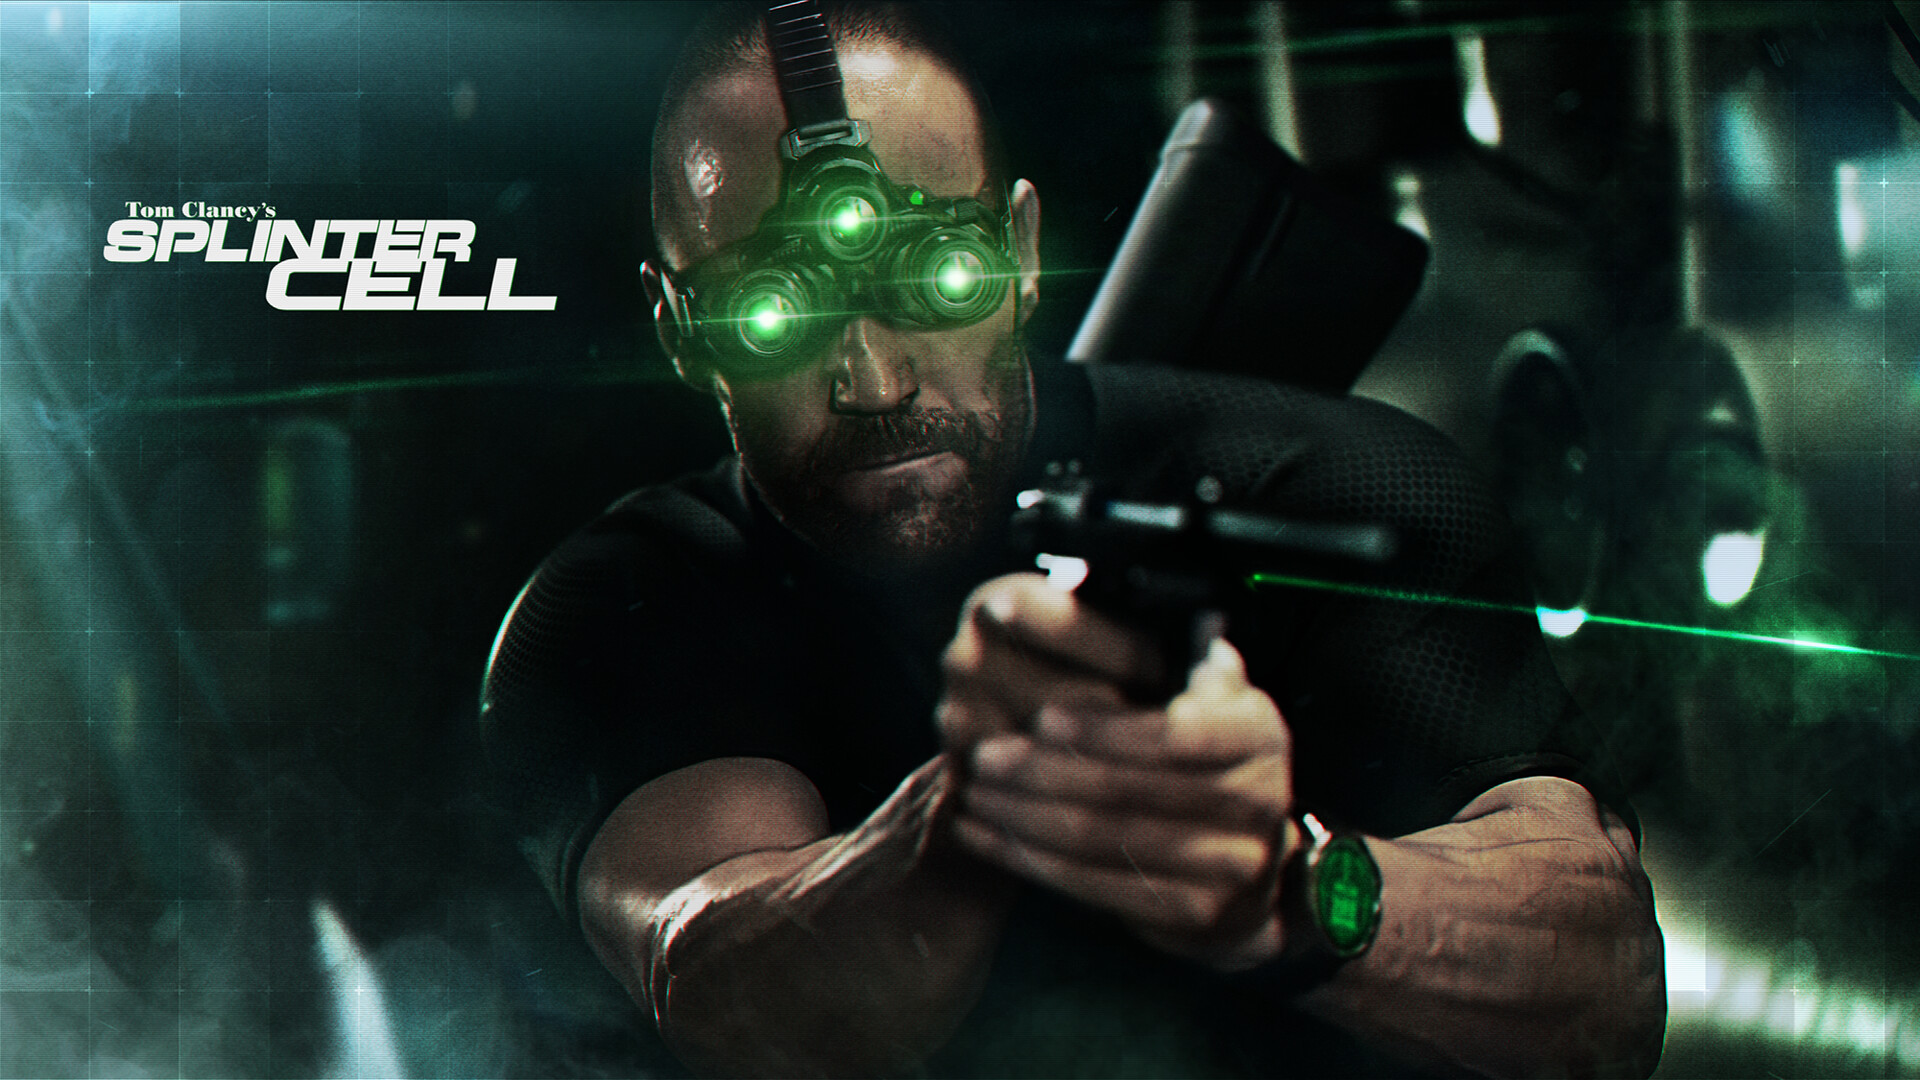 New Splinter Cell Release Date and COVID-19 Delay